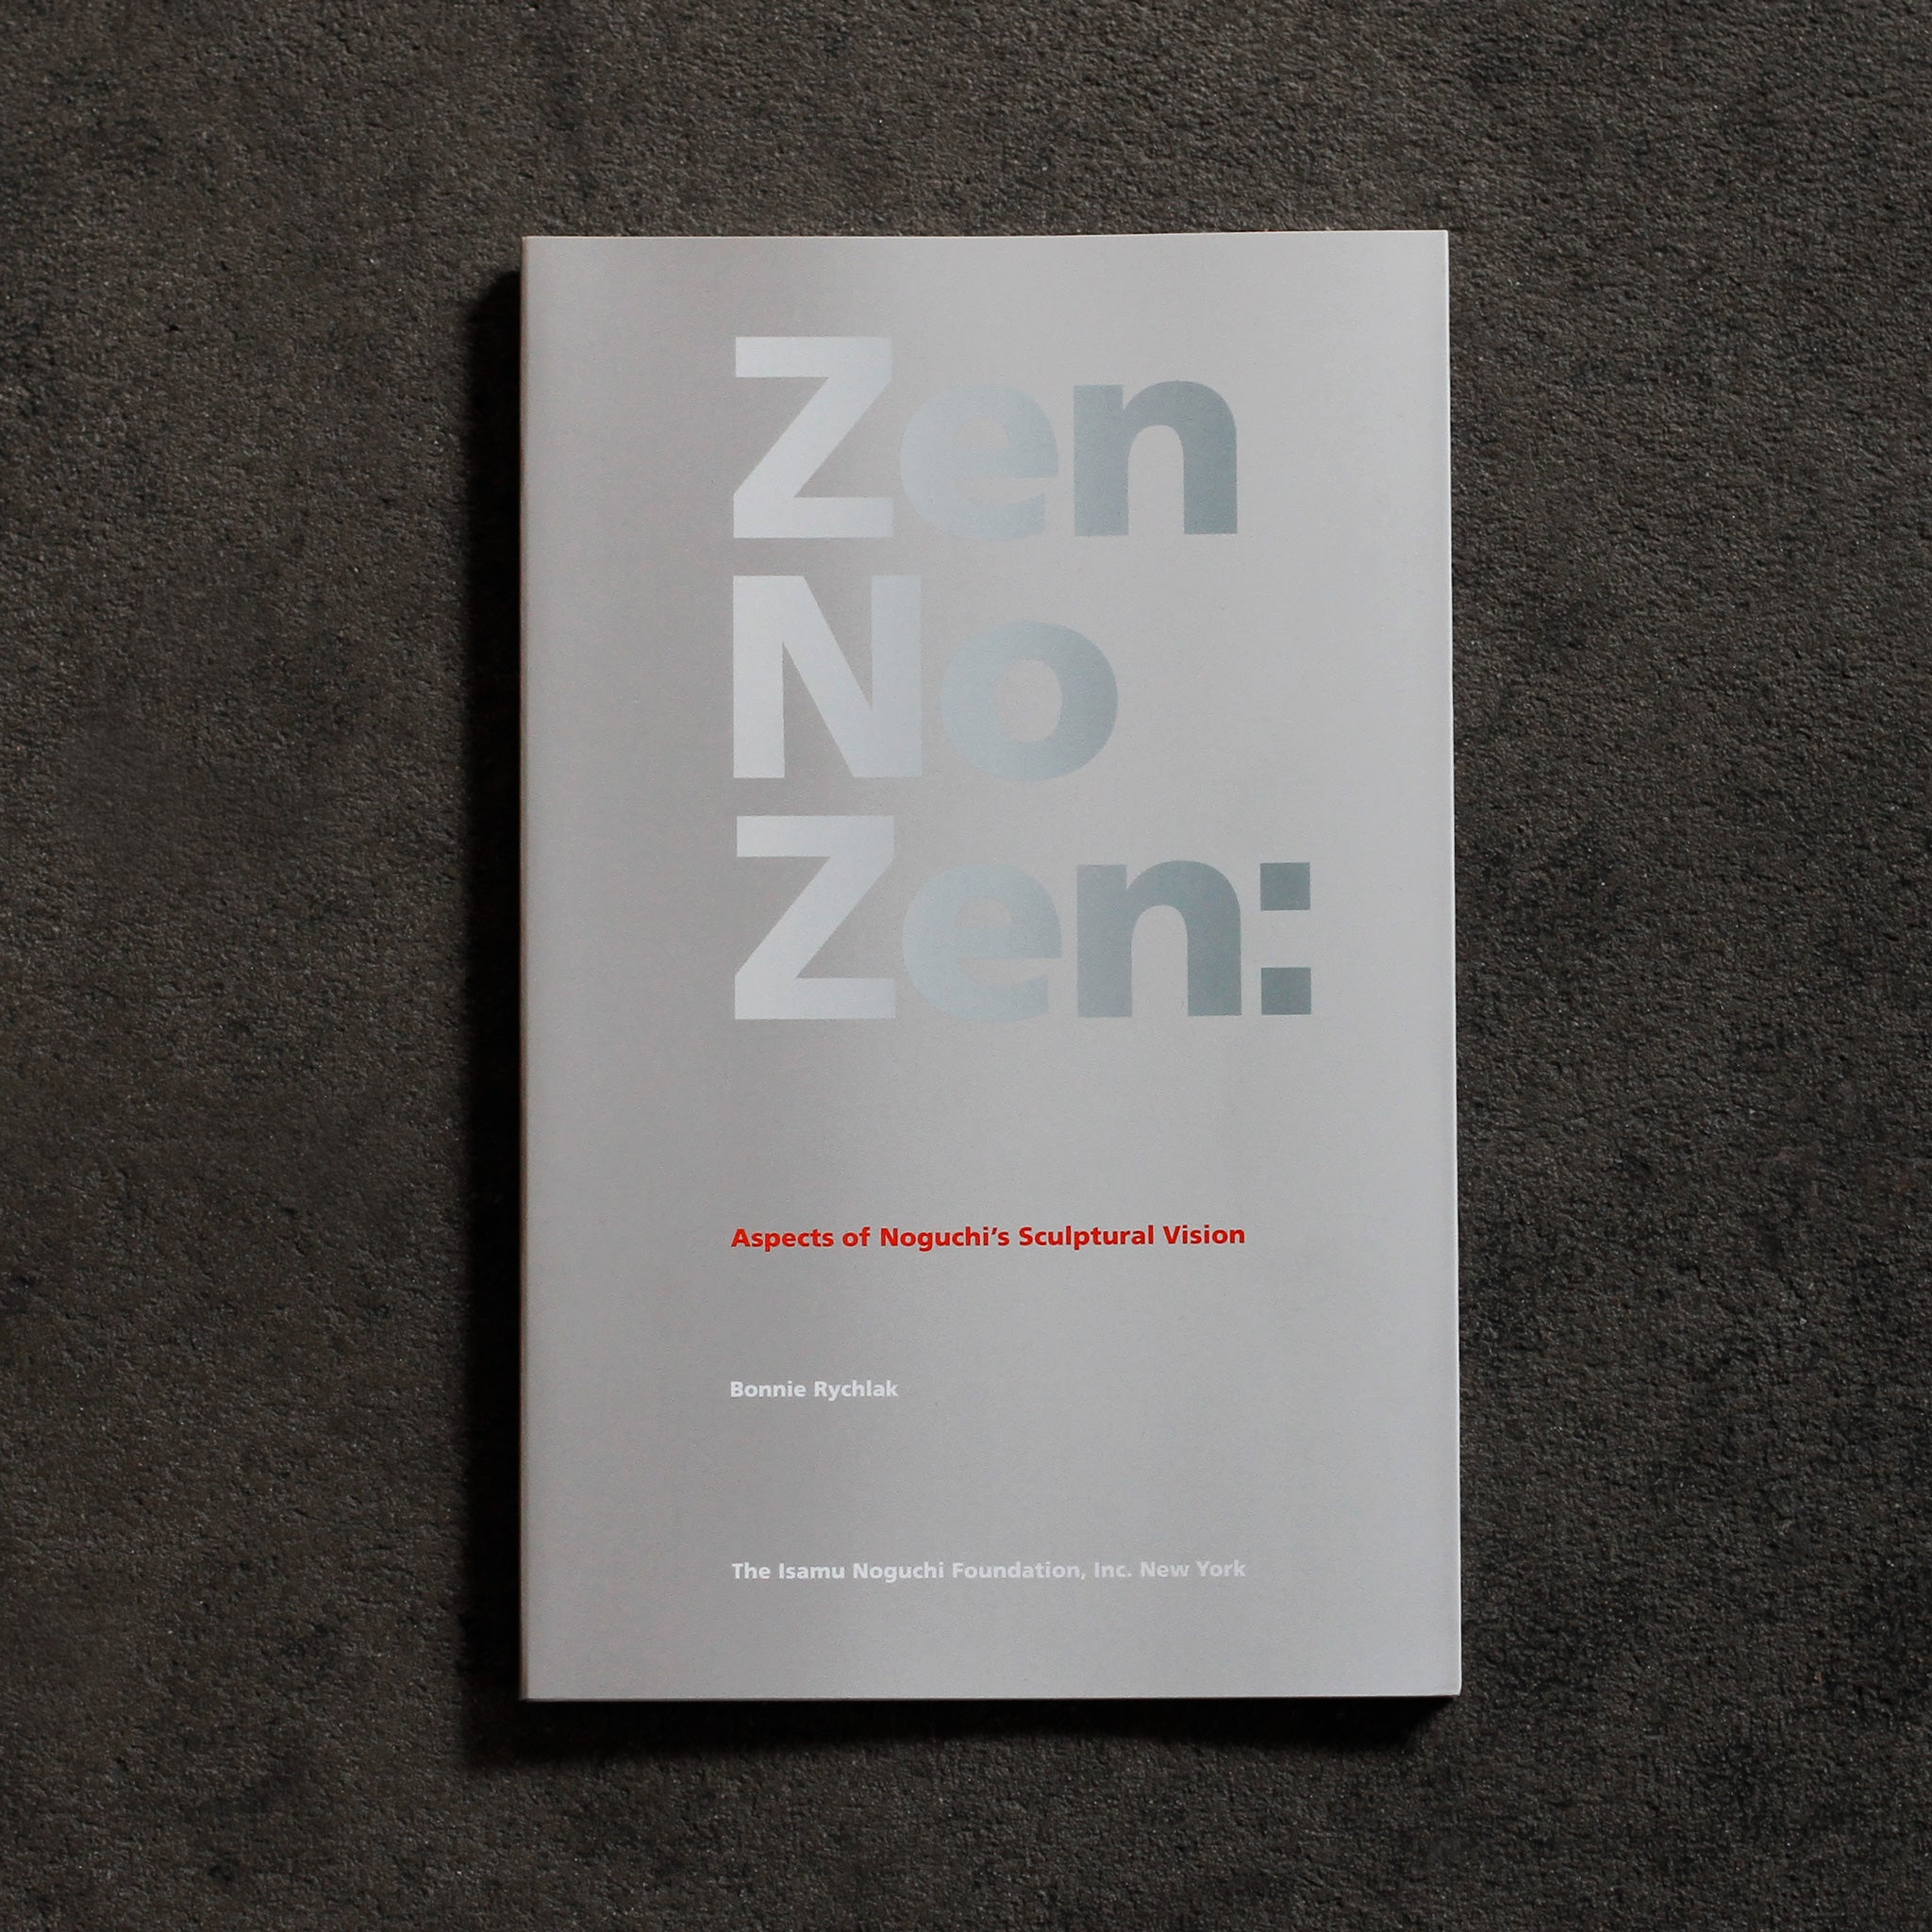 Cover of 'Zen No Zen.' Softcover book with silver grey background and large reflective silver bold sans serif headline text 'Zen No Zen'. In small red sans serif text below, 'Aspects of Noguchi's Sculptural Vision' and in white text below, same type style, 'Bonnie Rychlak,' 'The Isamu Noguchi Foundation Inc. New York'